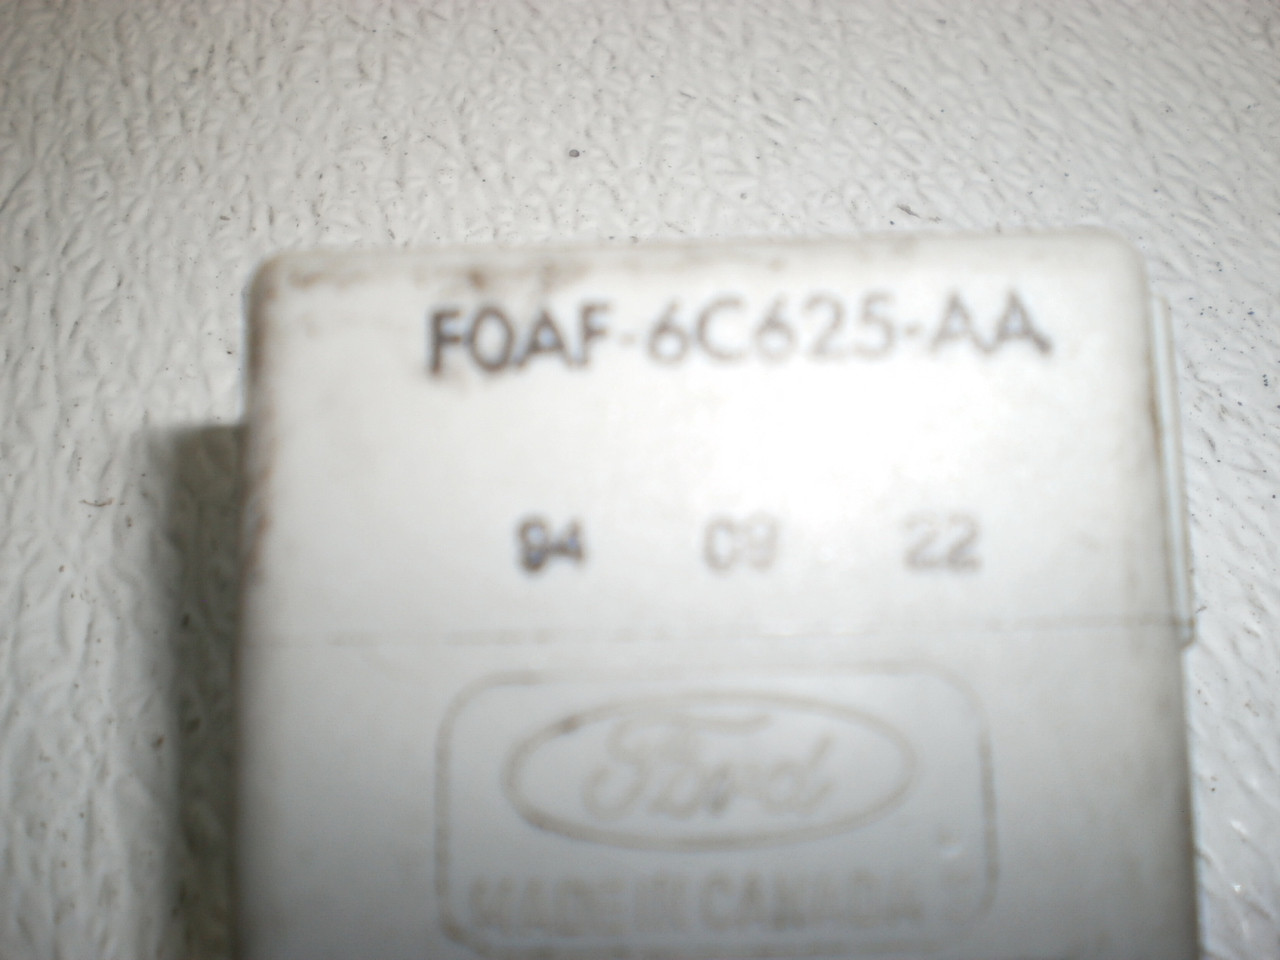 medium resolution of 1994 1998 ford mustang under dash low oil level sensing module box f0af 6c625 aa